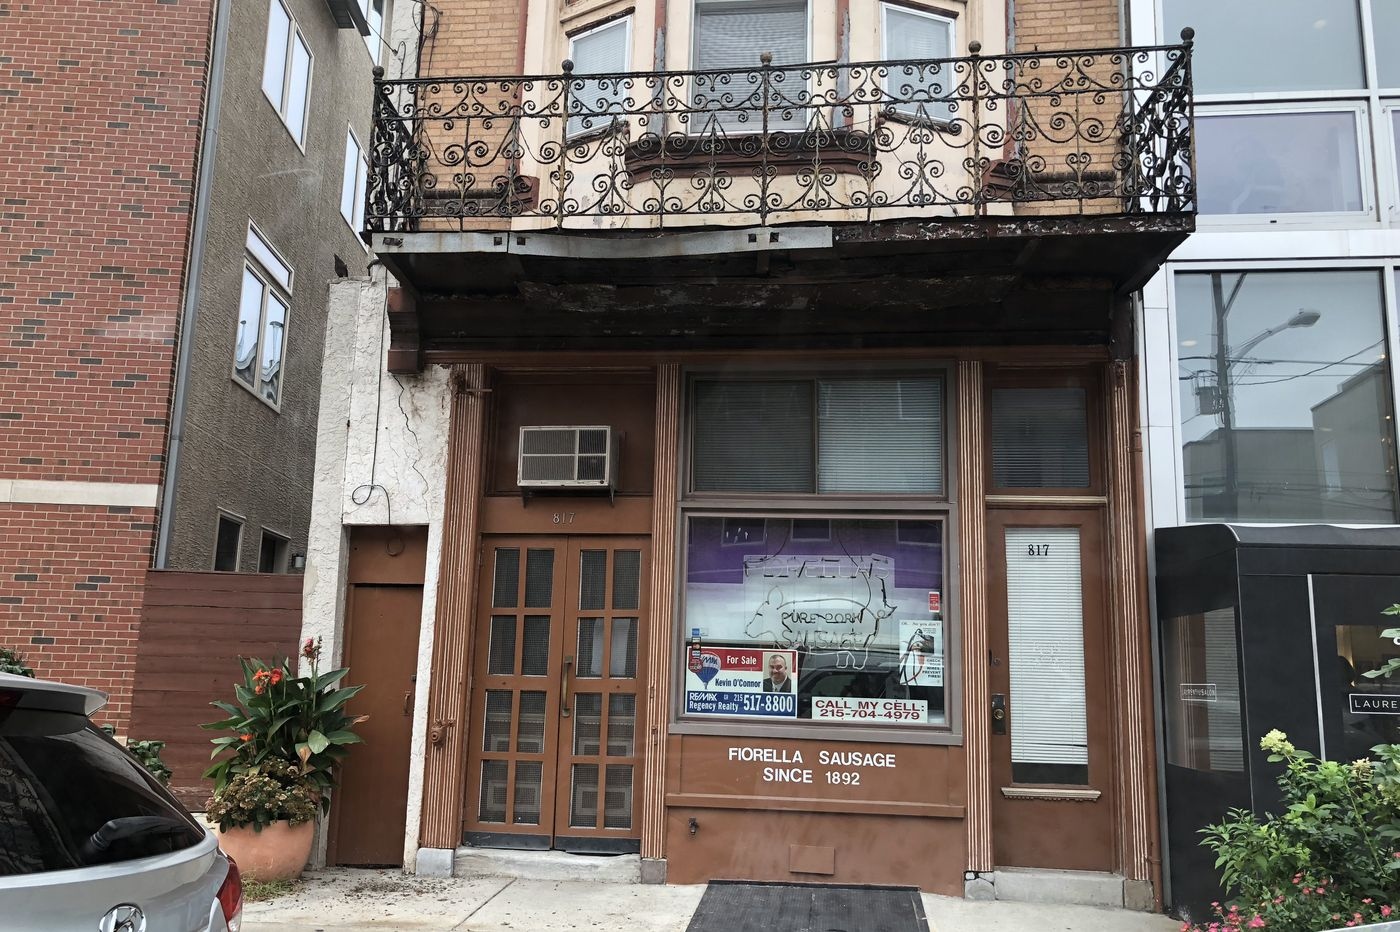 South Philly butcher shop Fiorella's Sausage is for sale